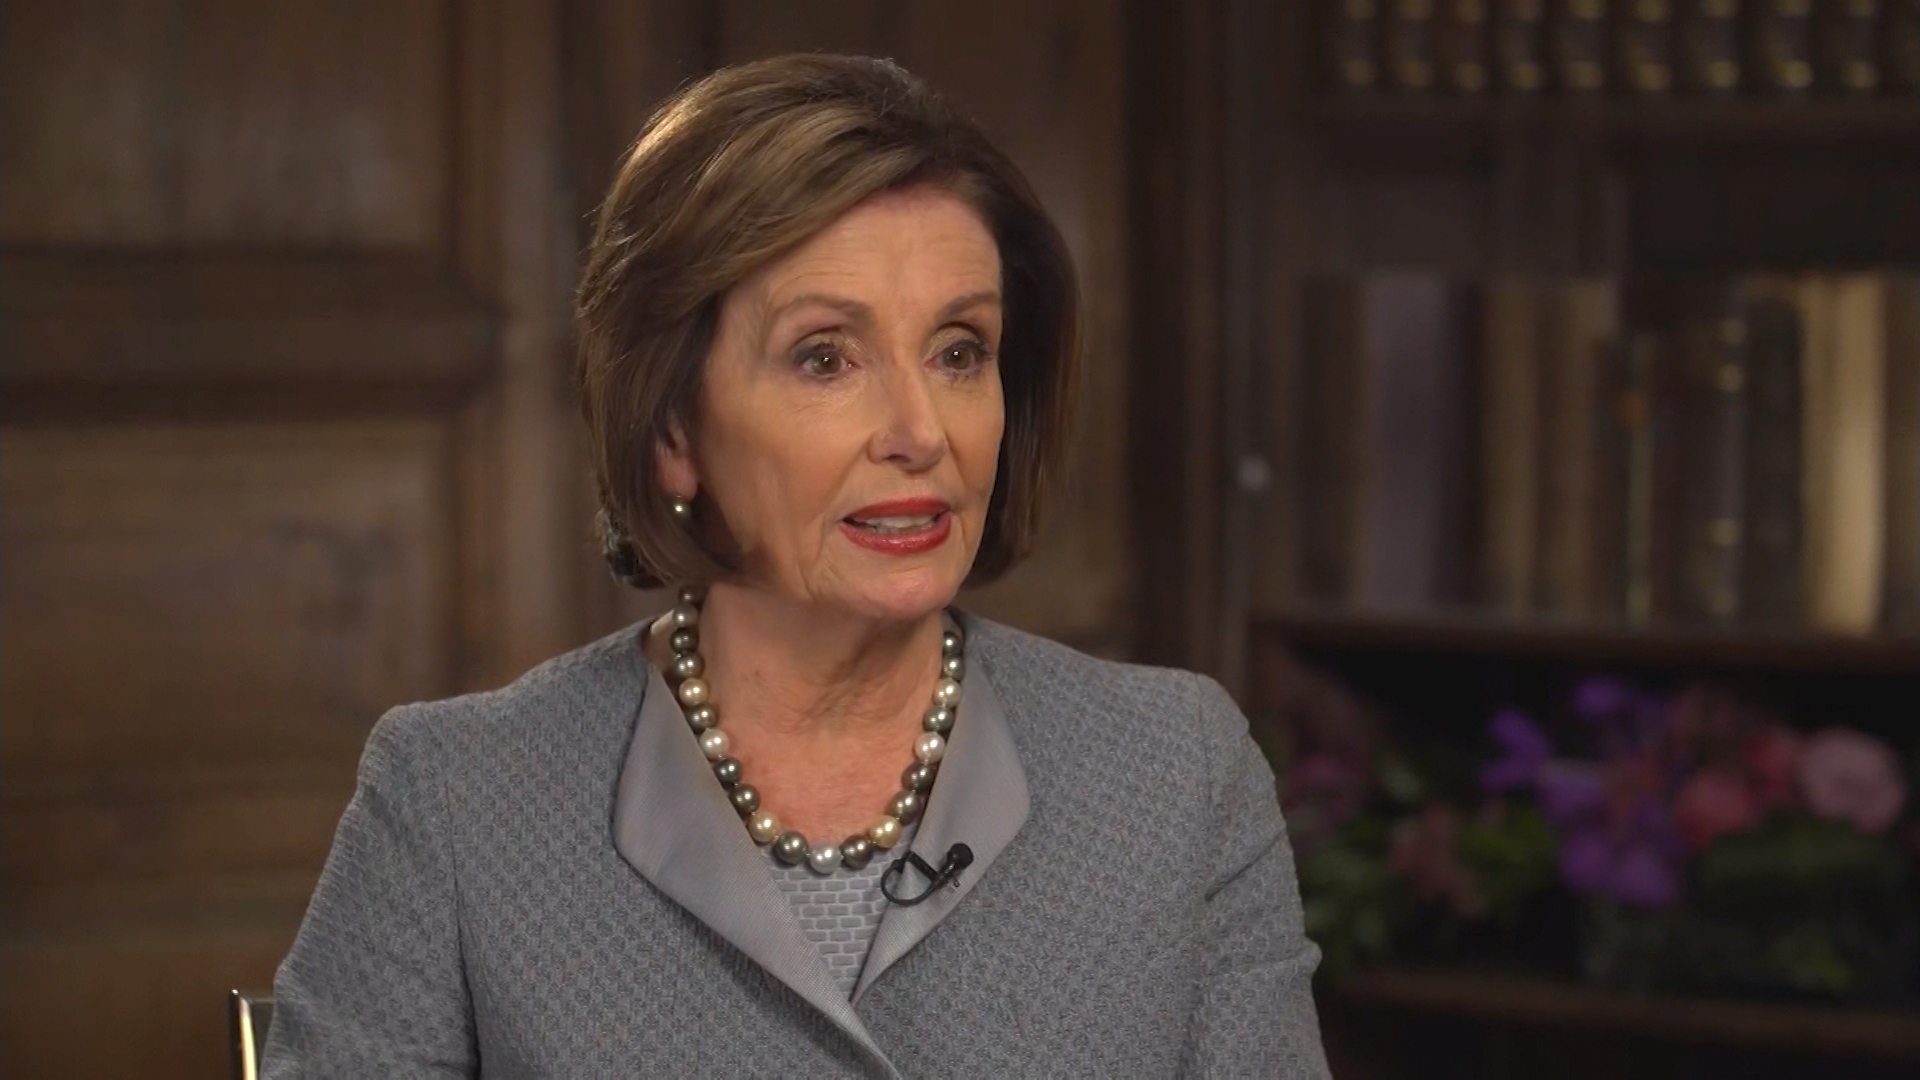 Nancy Pelosi says she would be comfortable with Bernie Sanders winning the Democratic presidential nomination